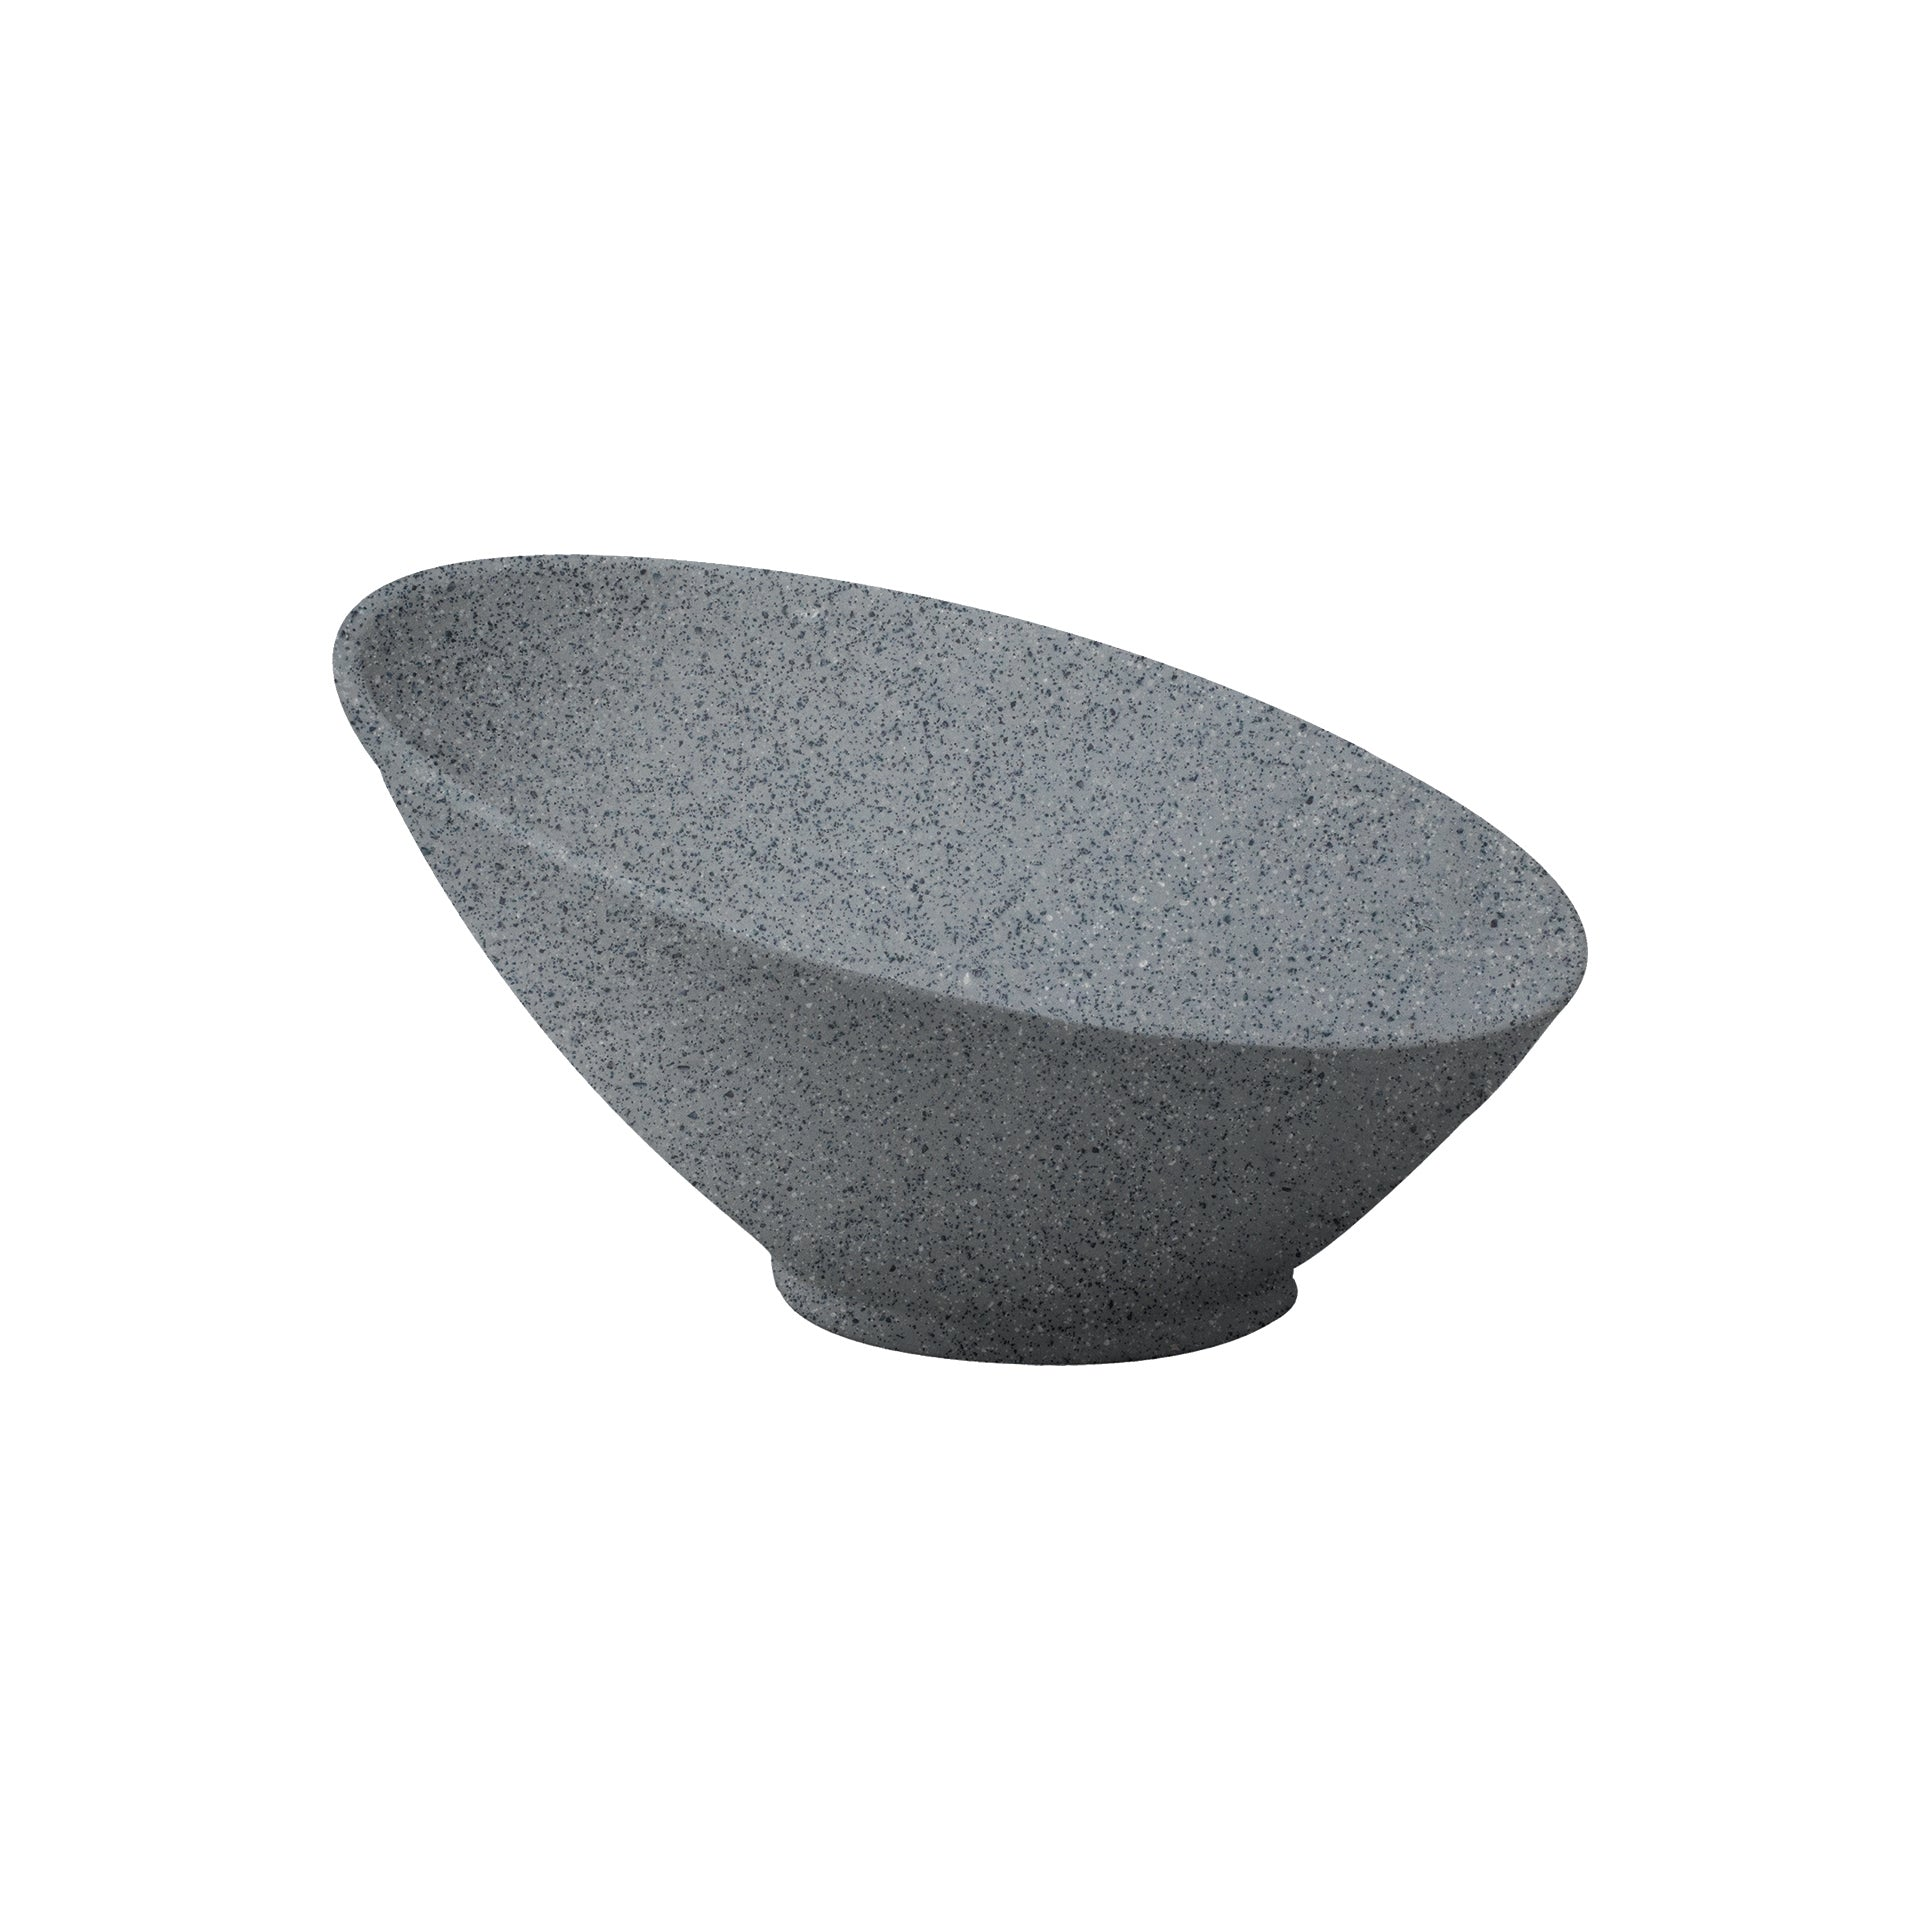 Bowl Inclinado De 21 cm|Melamina Gray Granite